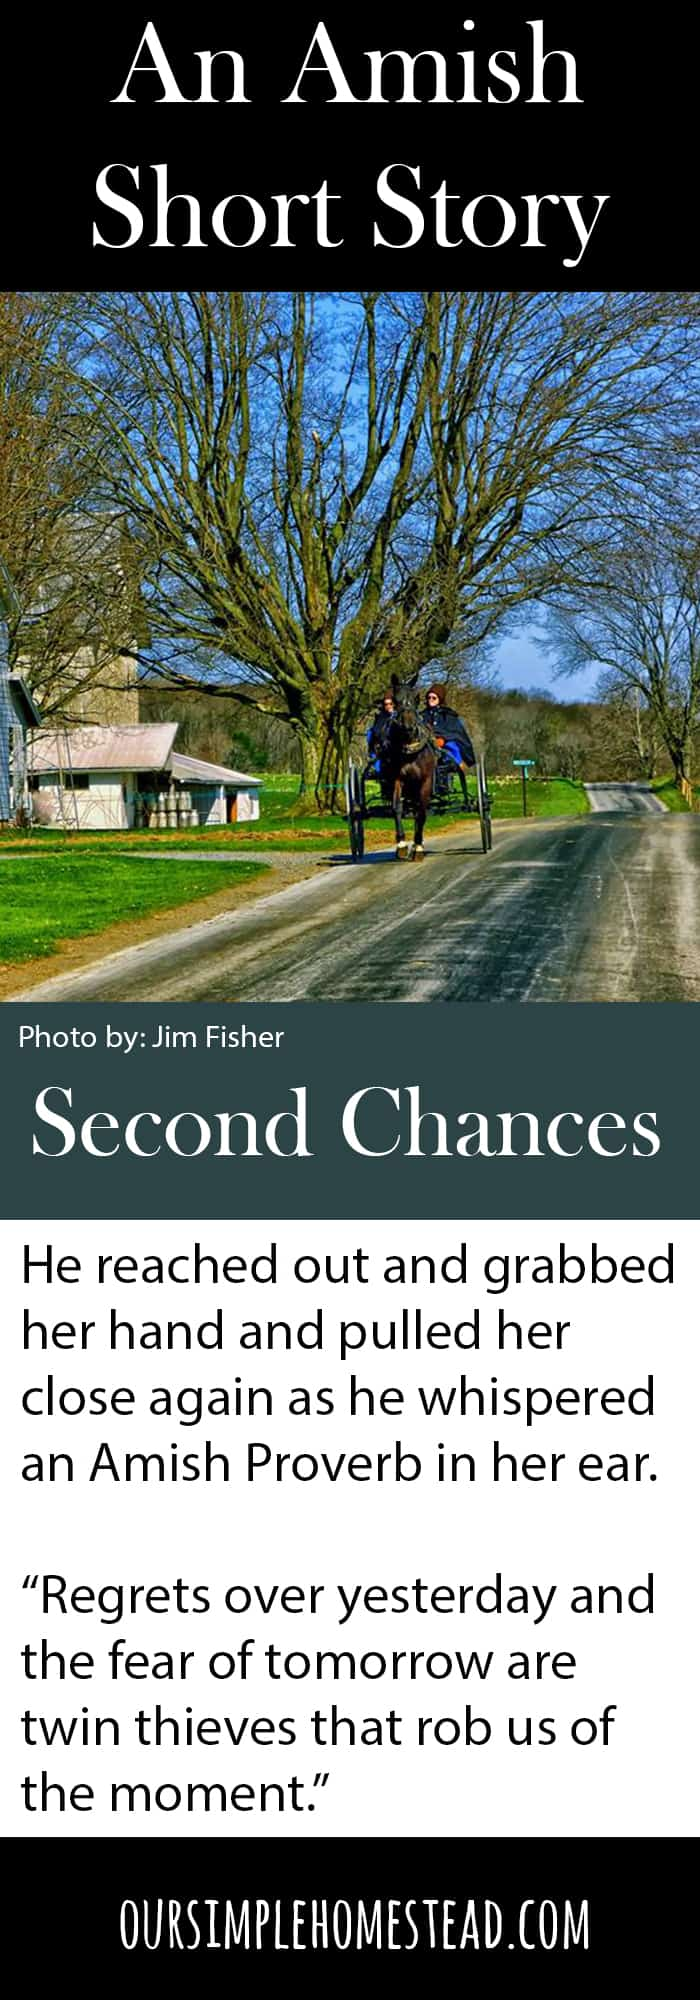 Second Chances An Amish Short Story